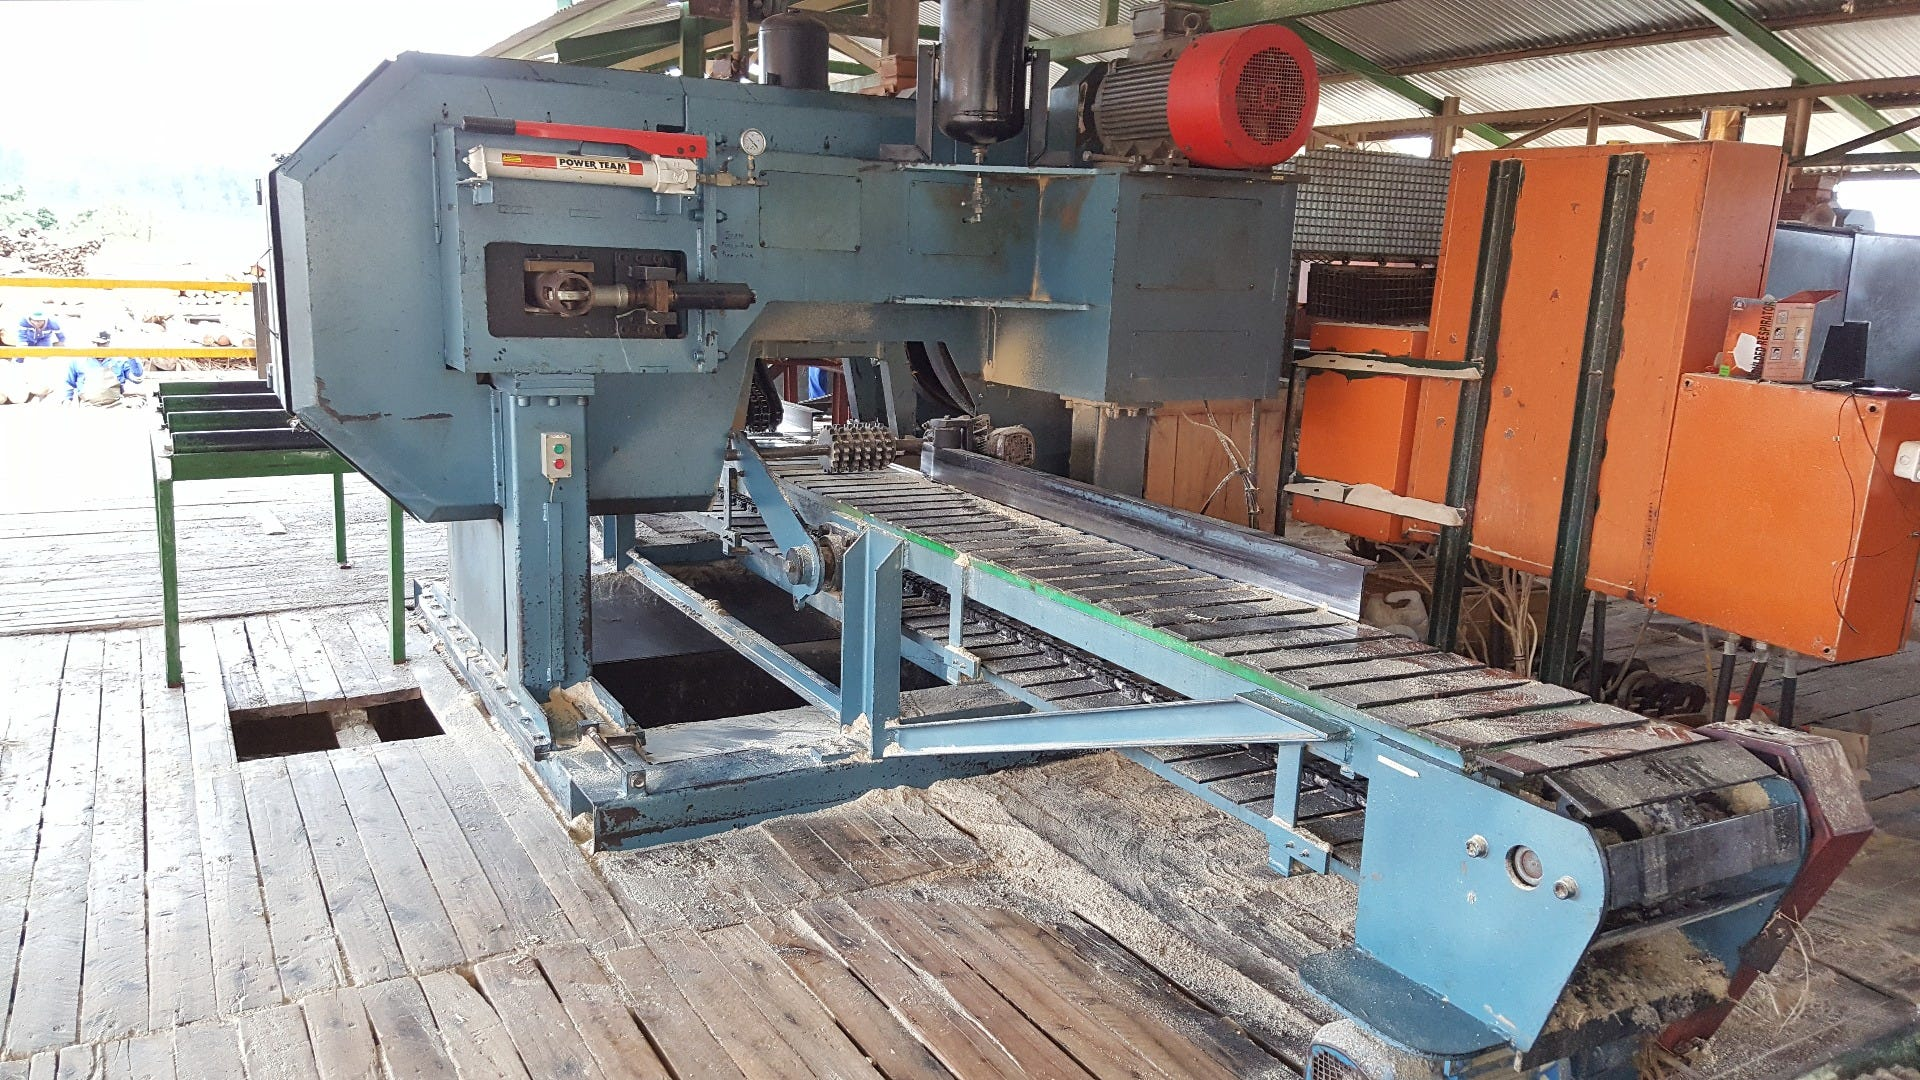 A Wood-Mizer TITAN 4 Twin resaw taking care of part of the sideboards that exit the TVS.